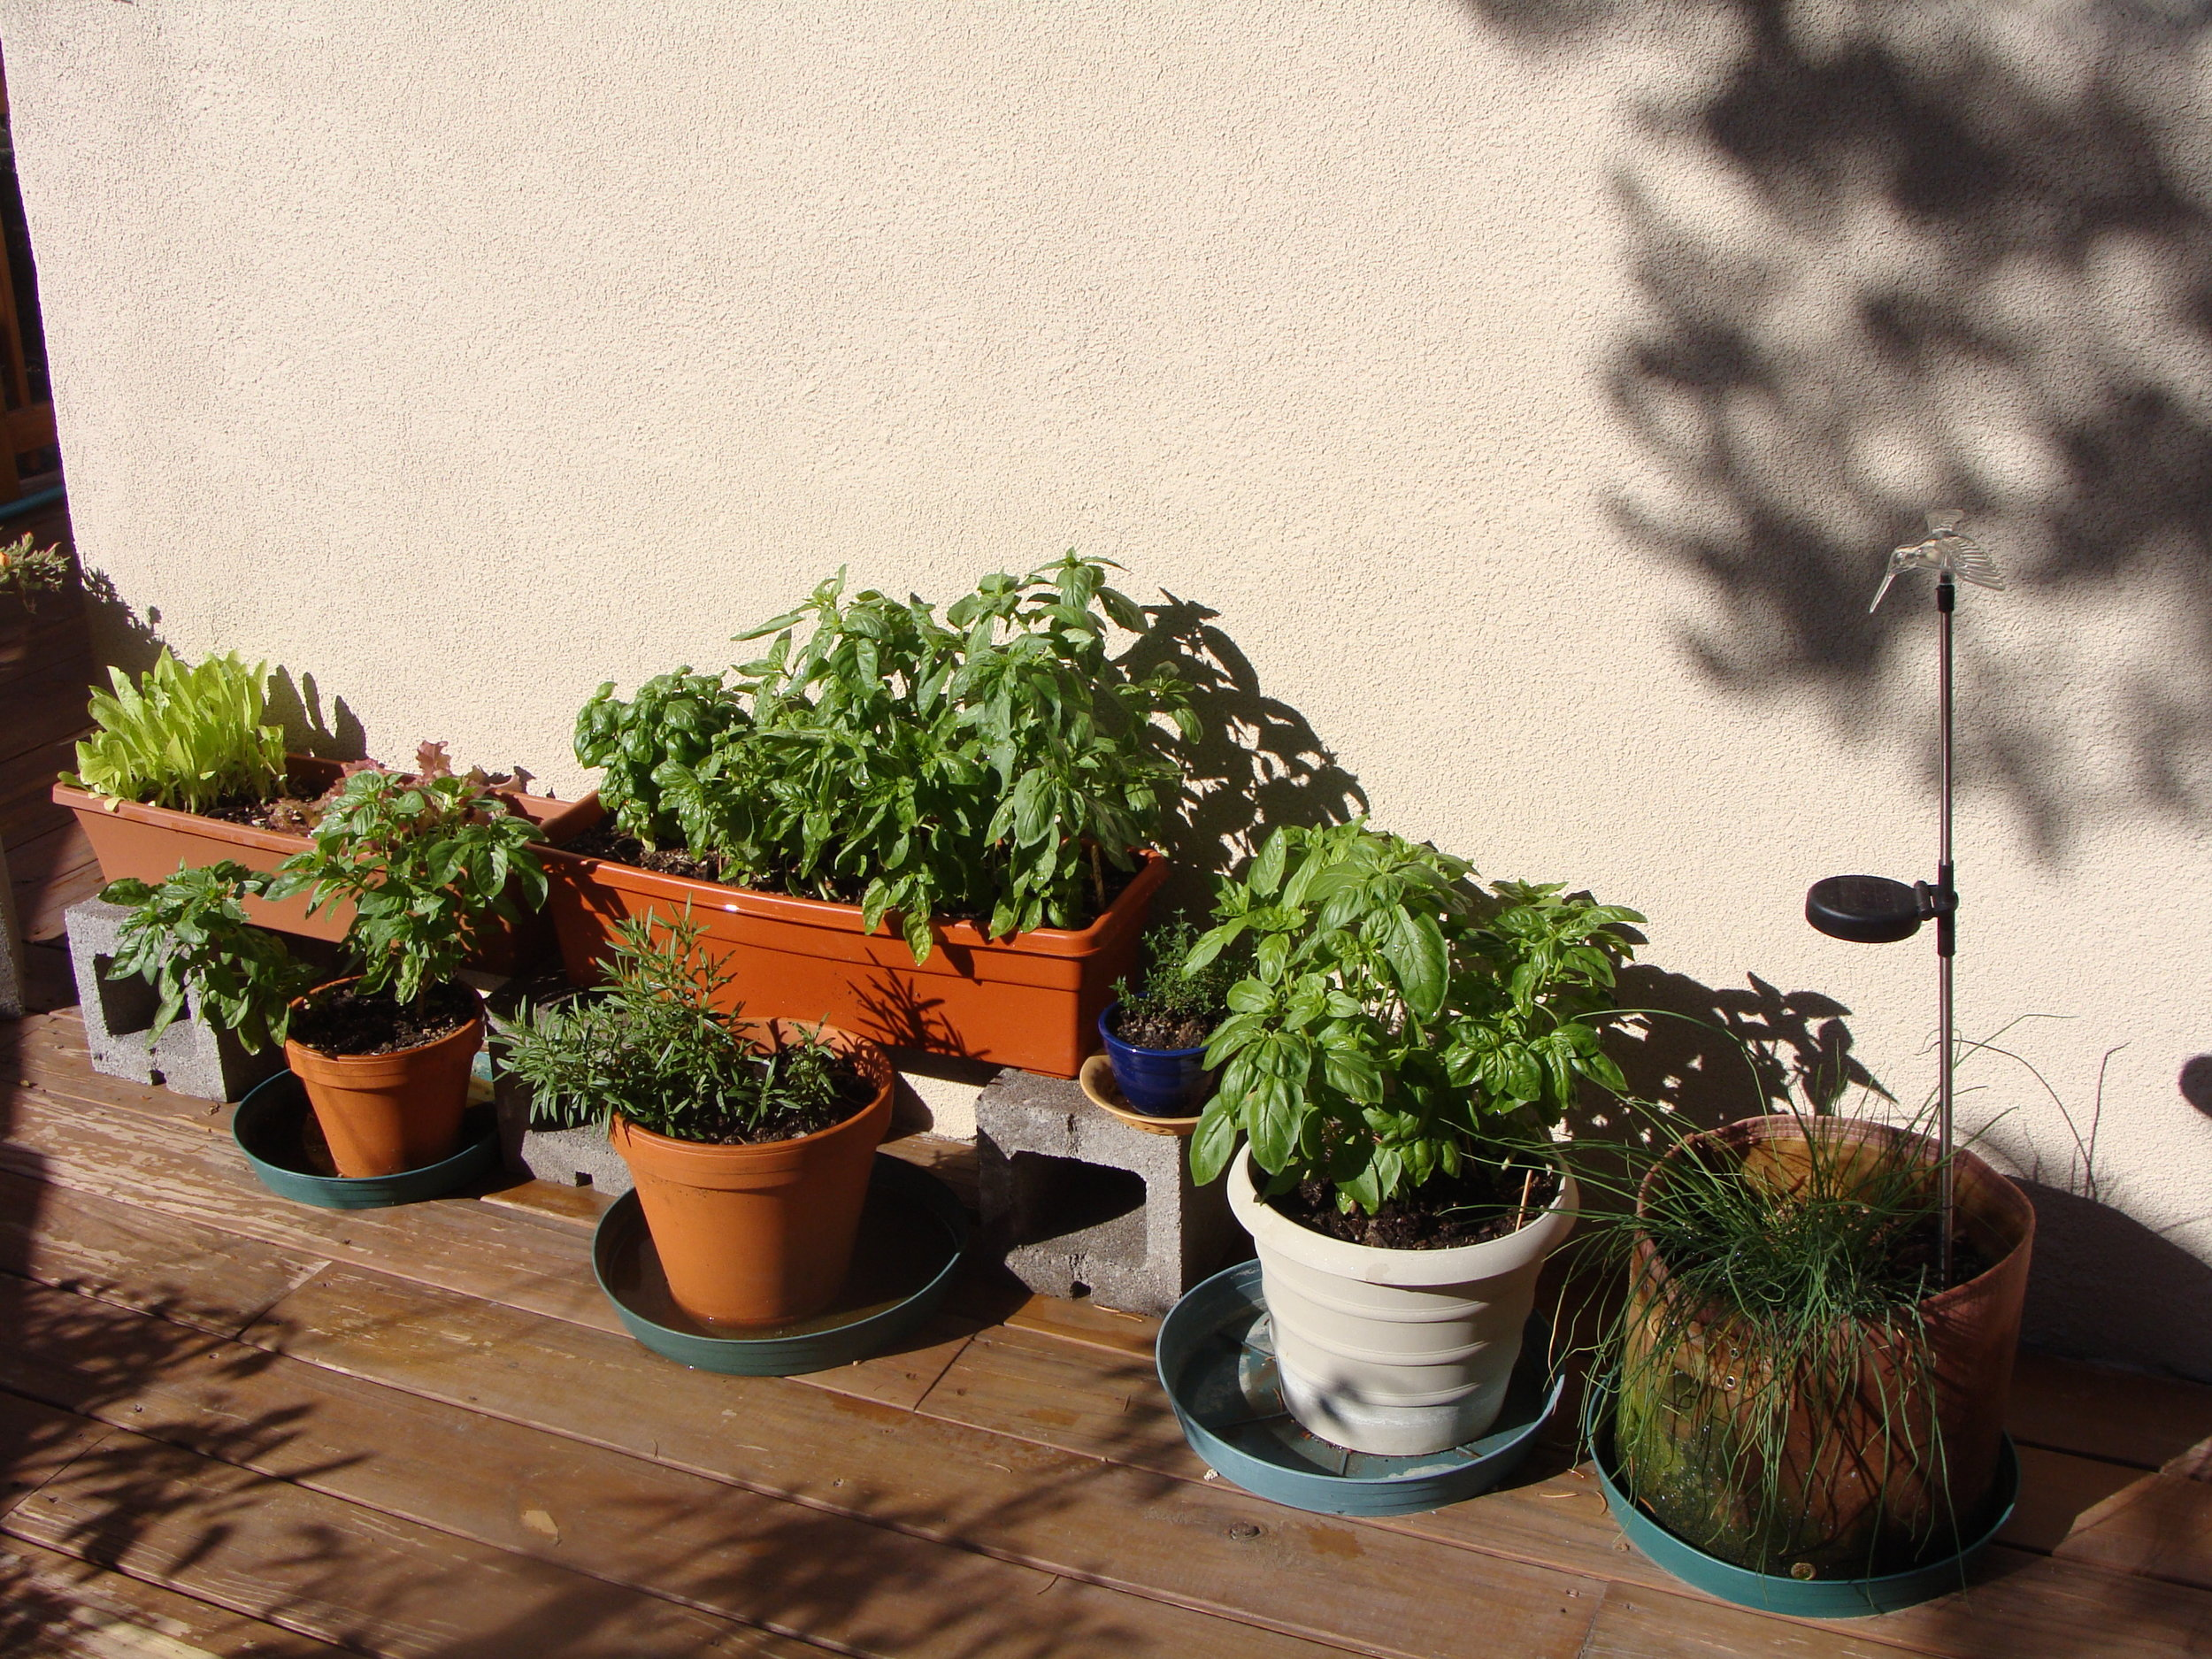 As local as it gets - my deck garden.